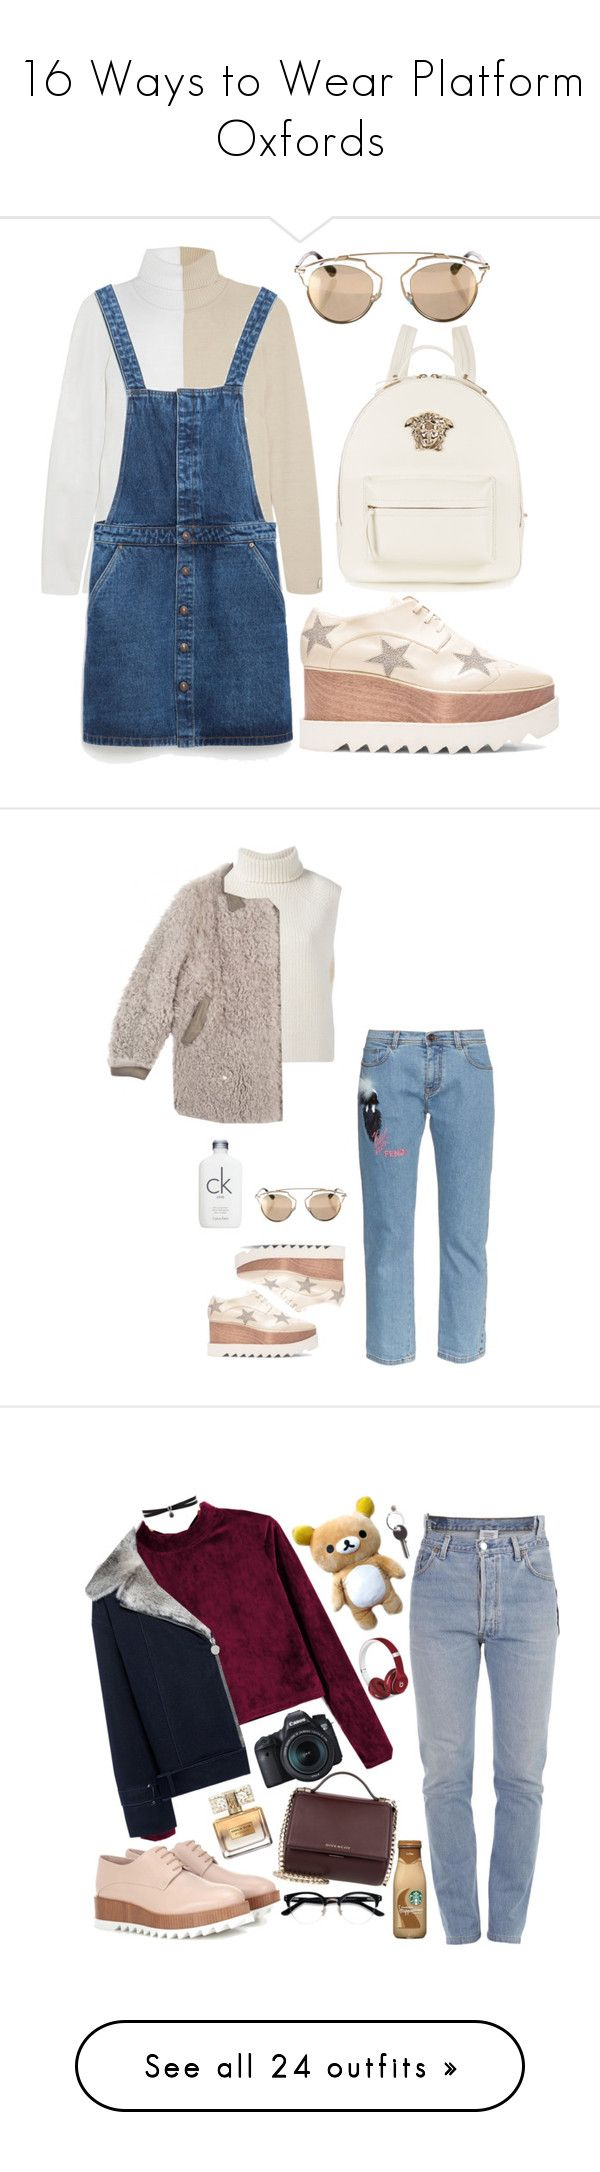 """""""16 Ways to Wear Platform Oxfords"""" by polyvore-editorial ❤ liked on Polyvore featuring platformoxfords, Fendi, Zara, Christian Dior, STELLA McCARTNEY, Versace, Étoile Isabel Marant, Calvin Klein, shoes and flats"""